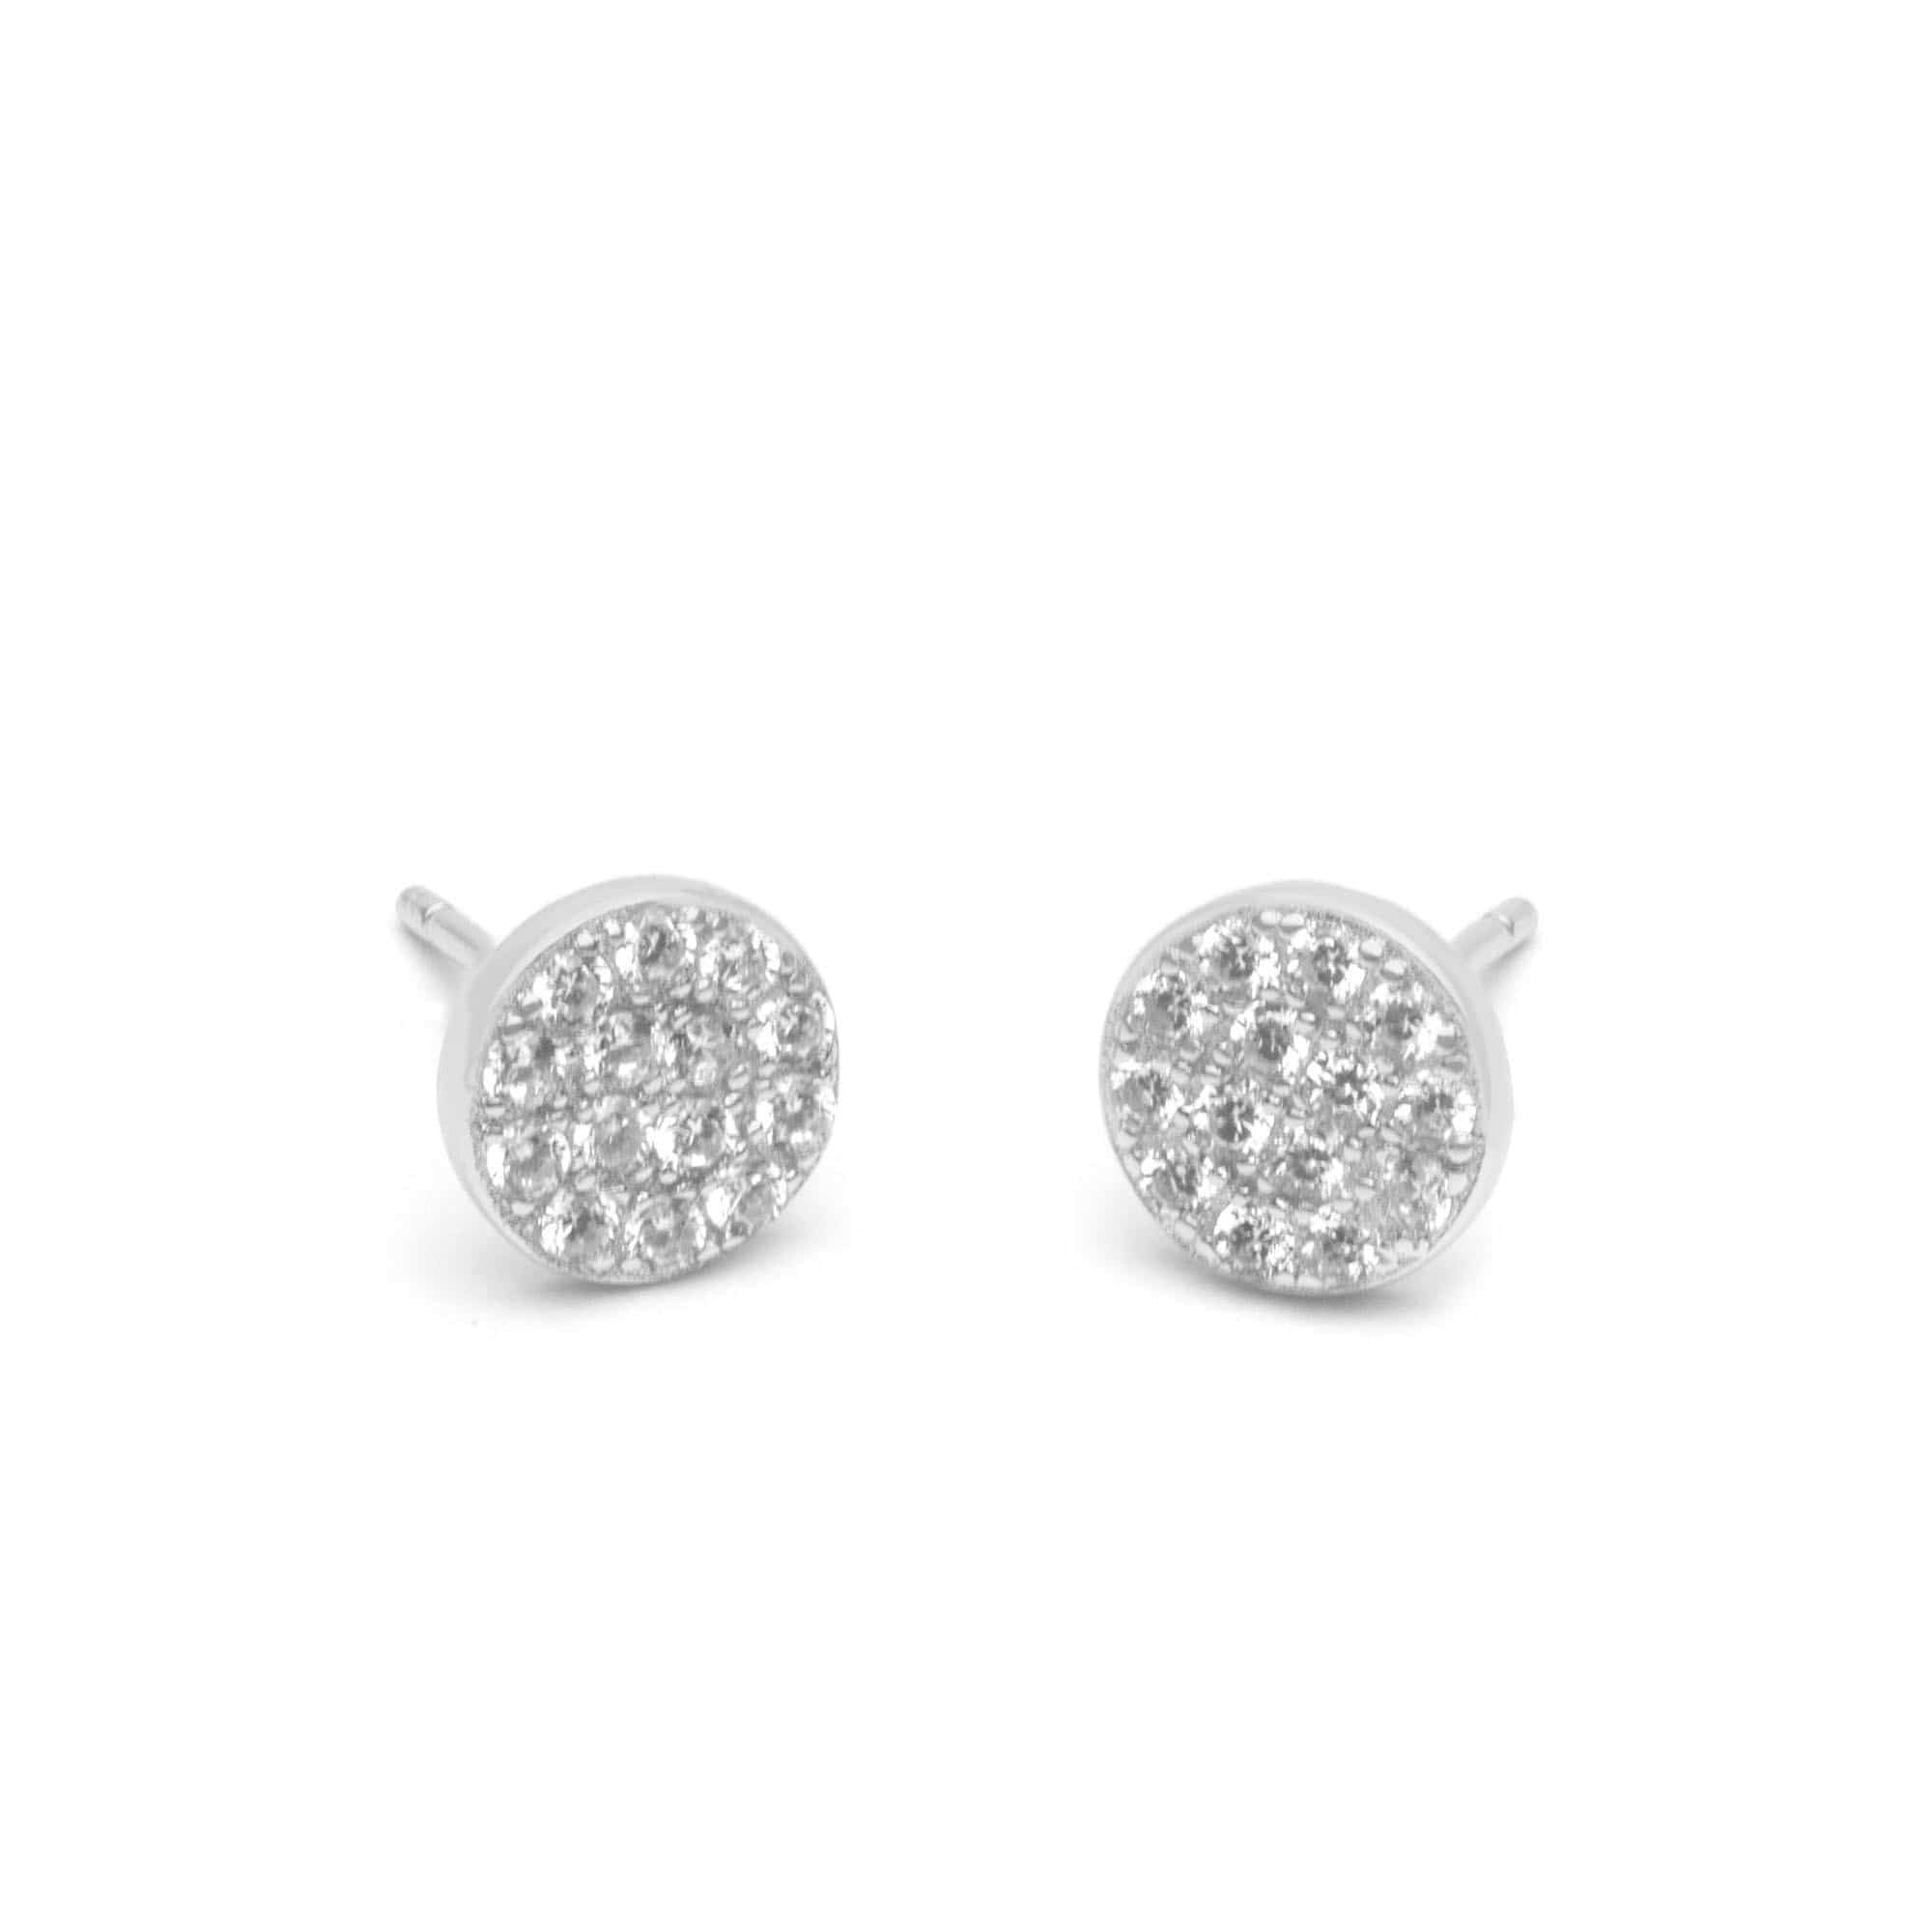 Jeanne's Jewels earrings White Gold Piper